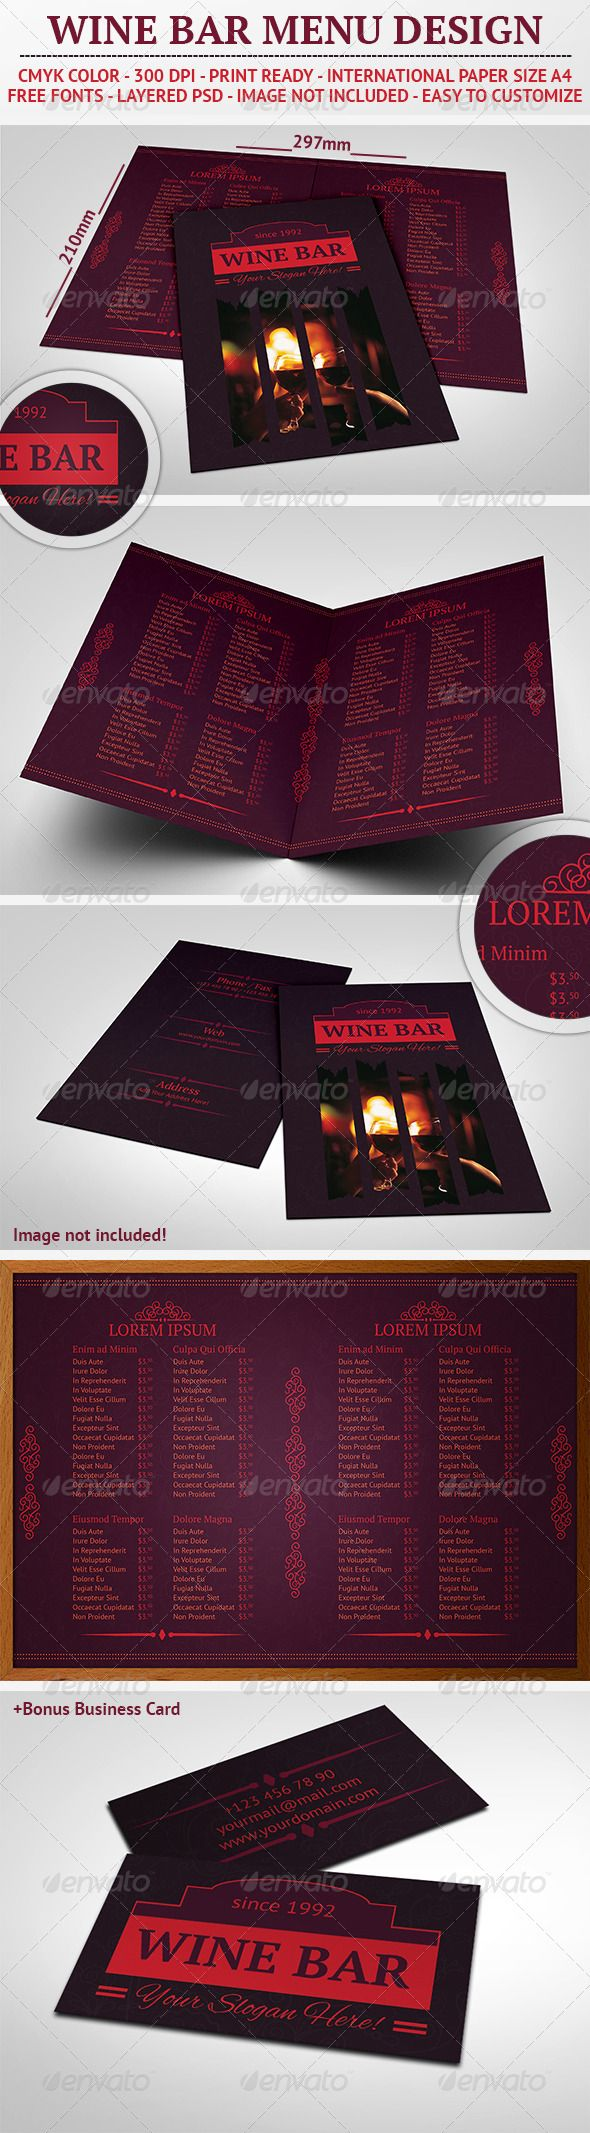 Wine Bar Menu Design  Menu Templates Food Menu Template And Template